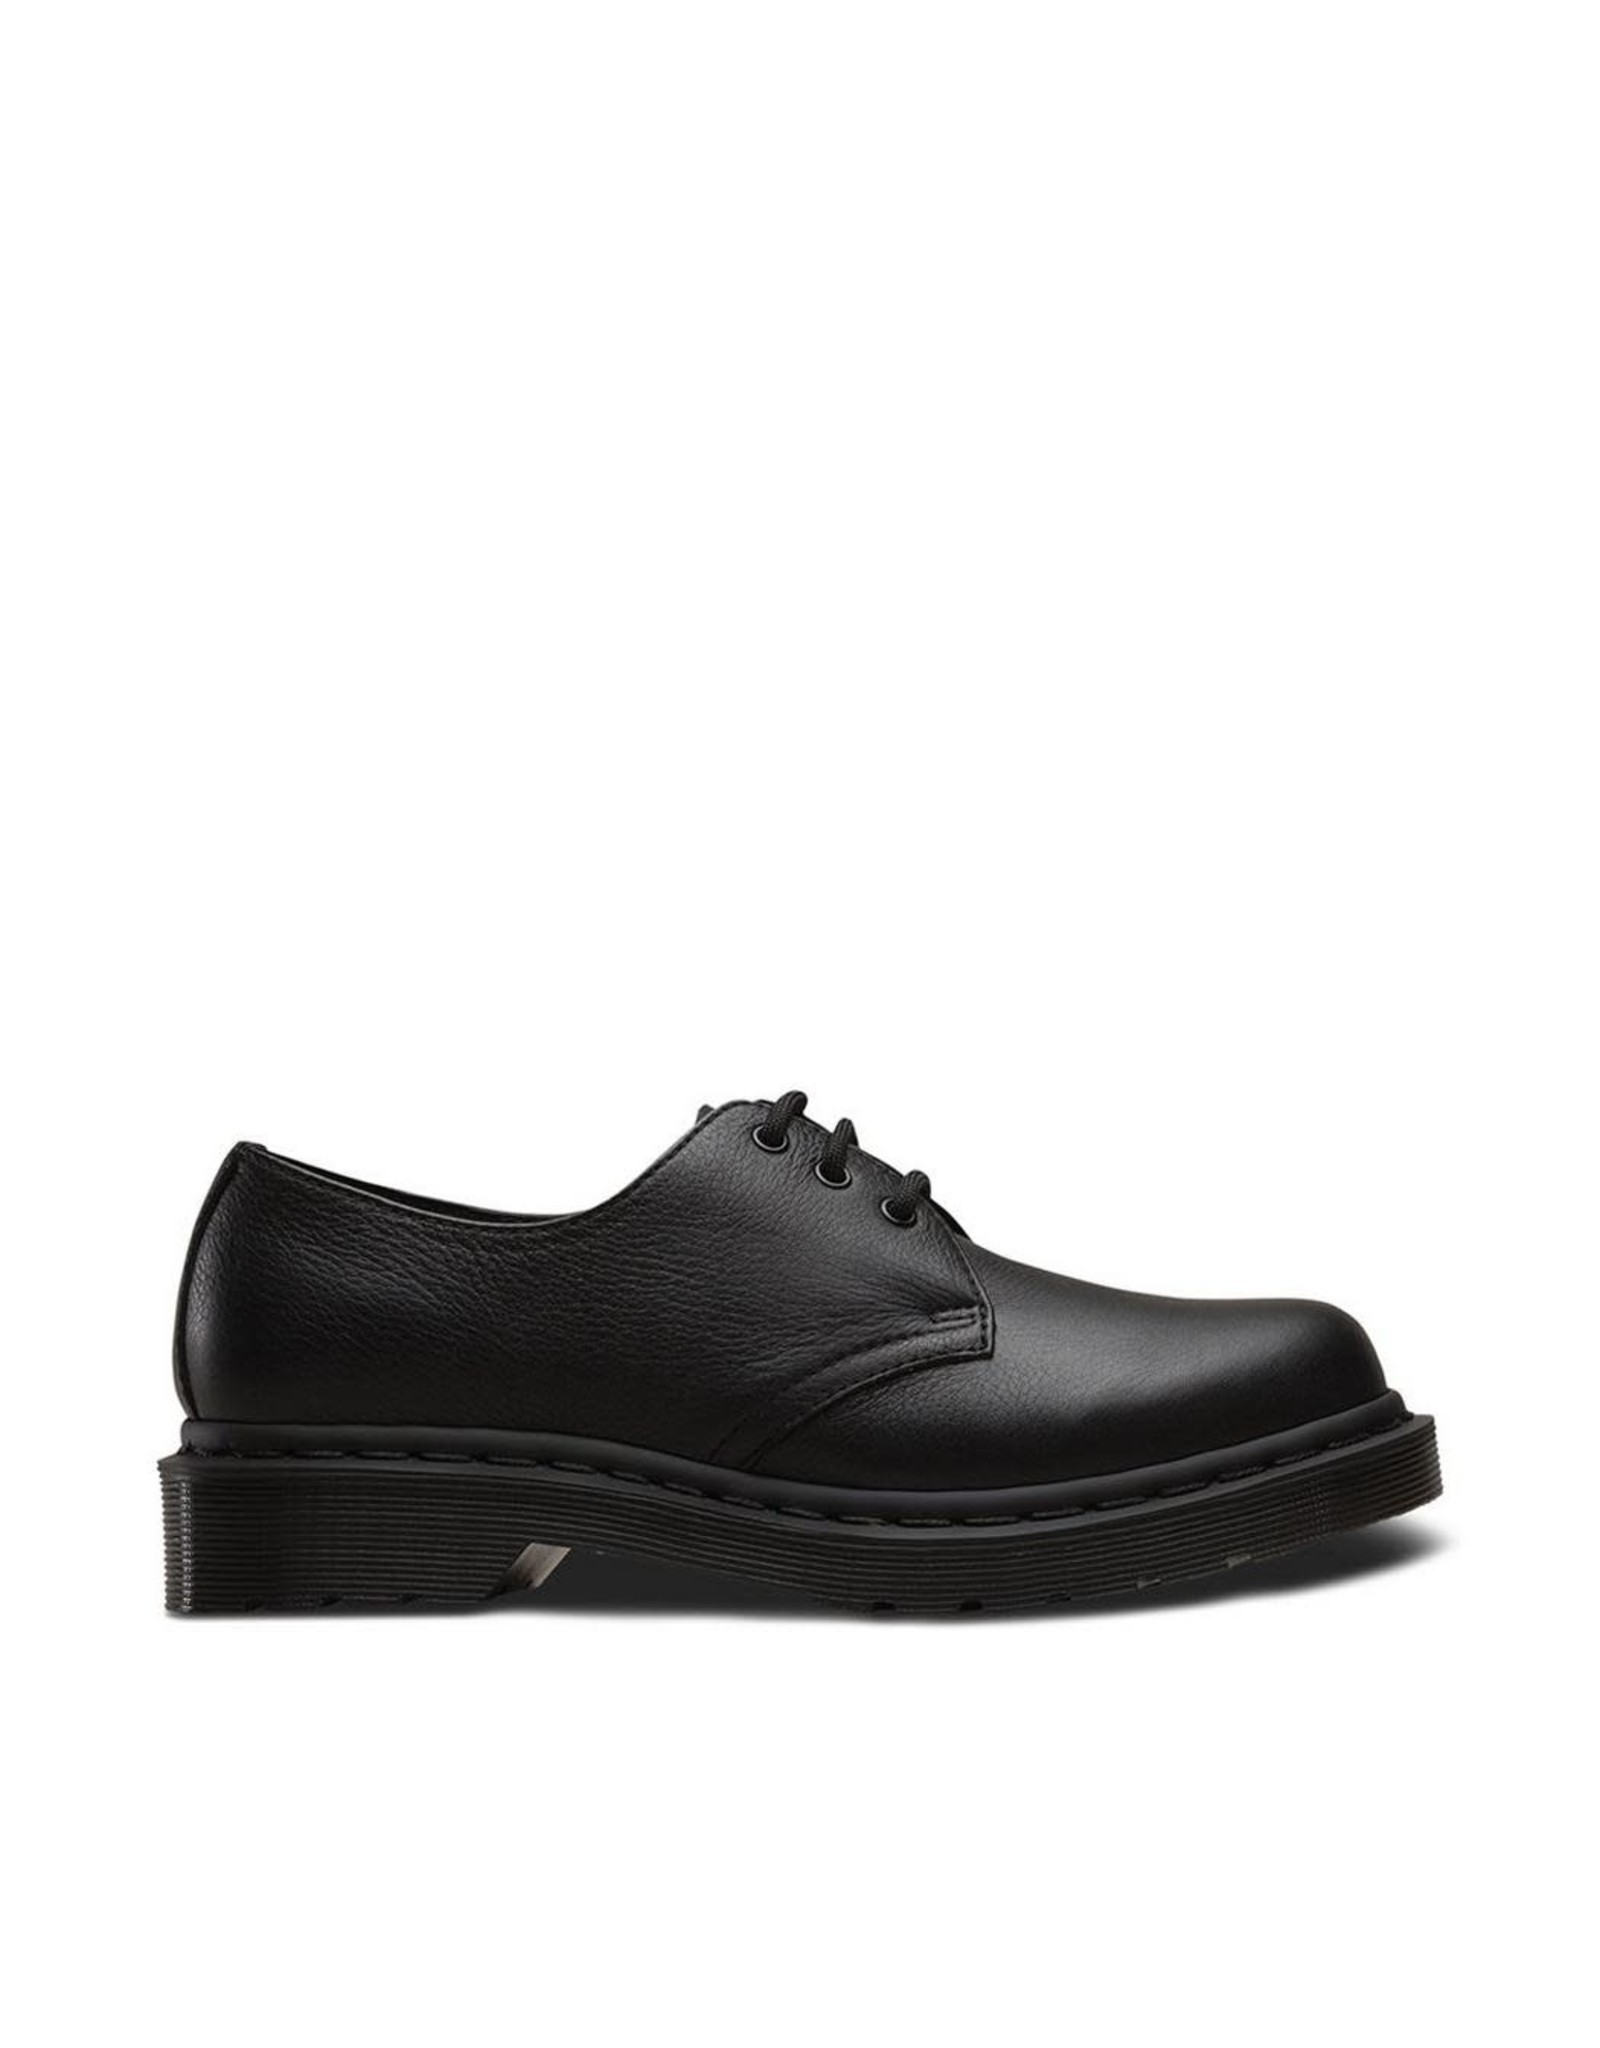 DR. MARTENS 1461 MONO BLACK VIRGINIA 301MOV-R24735001